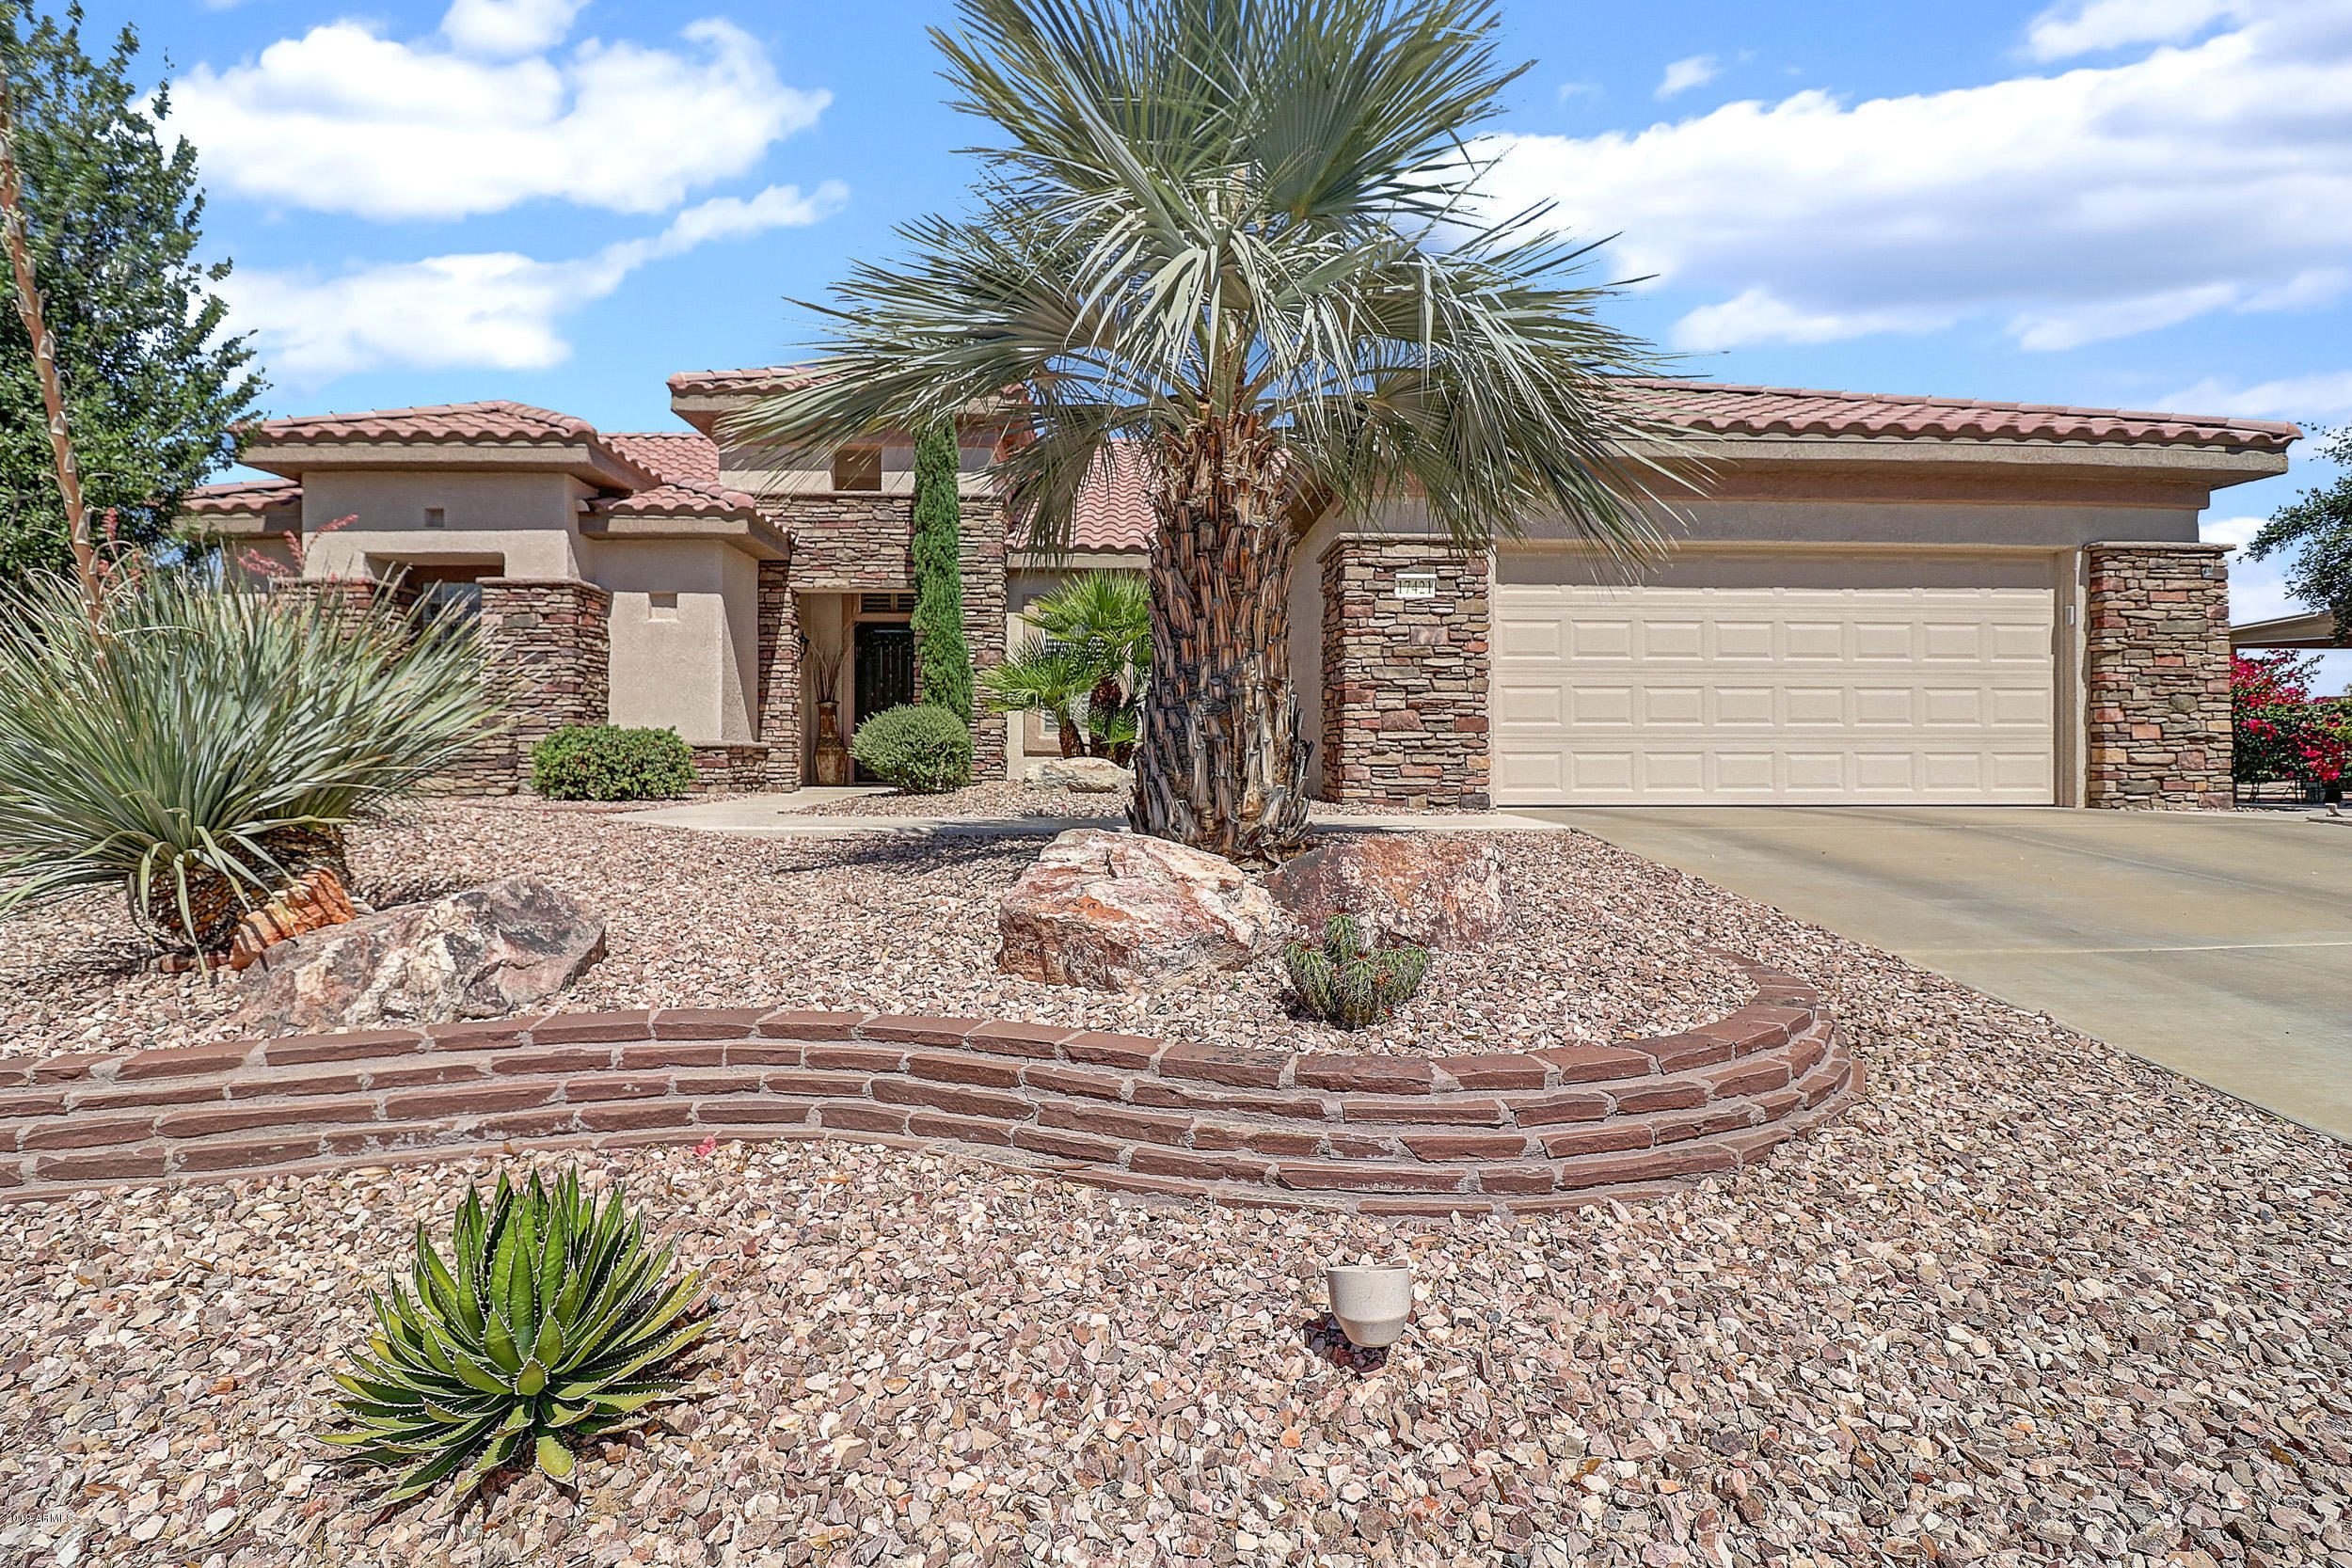 17421 N POTOMAC Lane, Surprise, Arizona